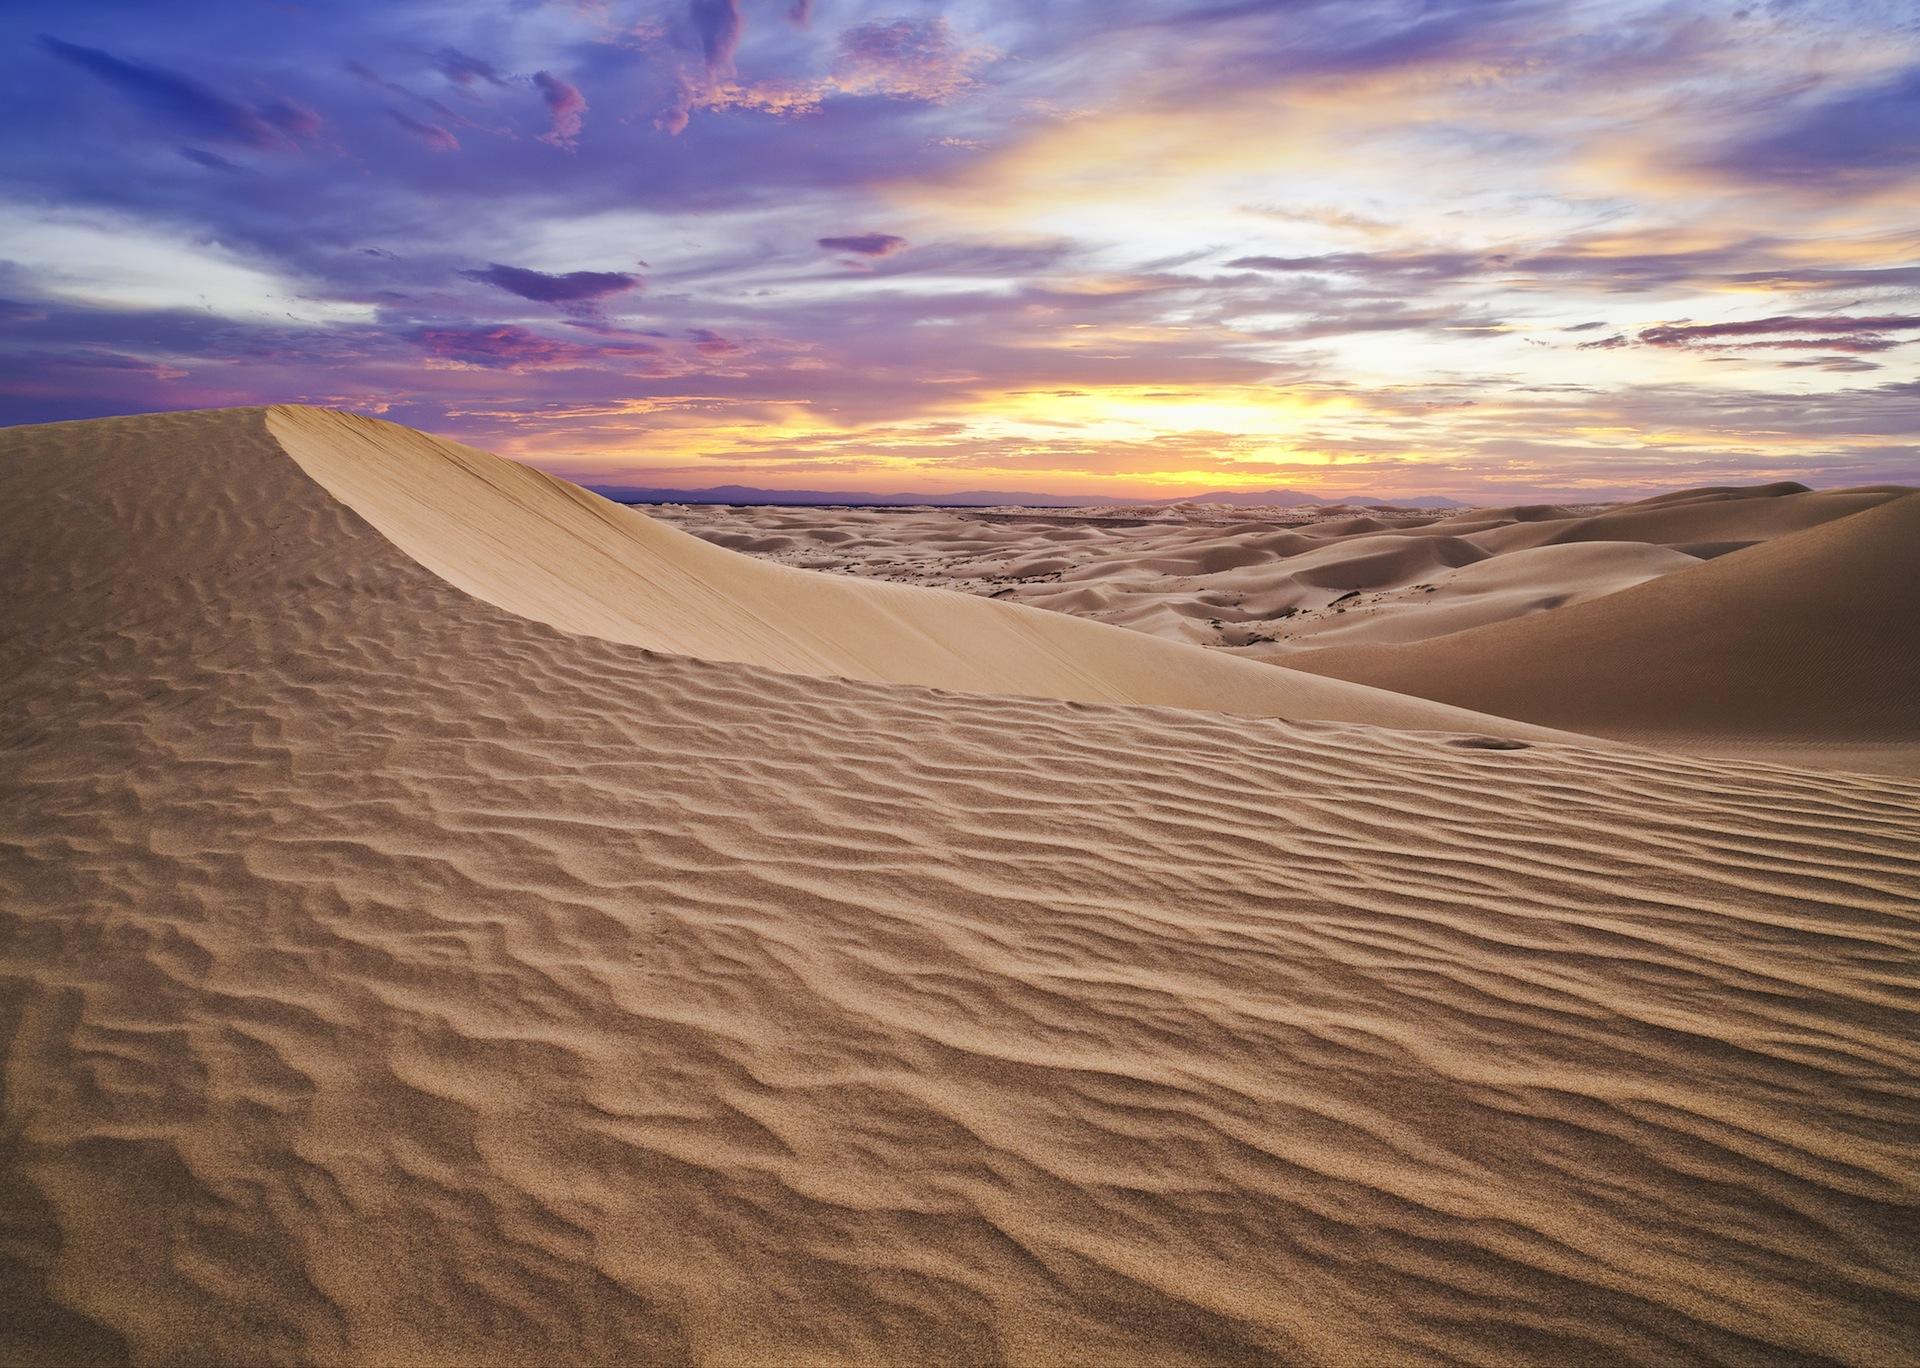 desert sand dunes at sunrise, the sky filled with light clouds and mixture of purple, blue and pink hues.